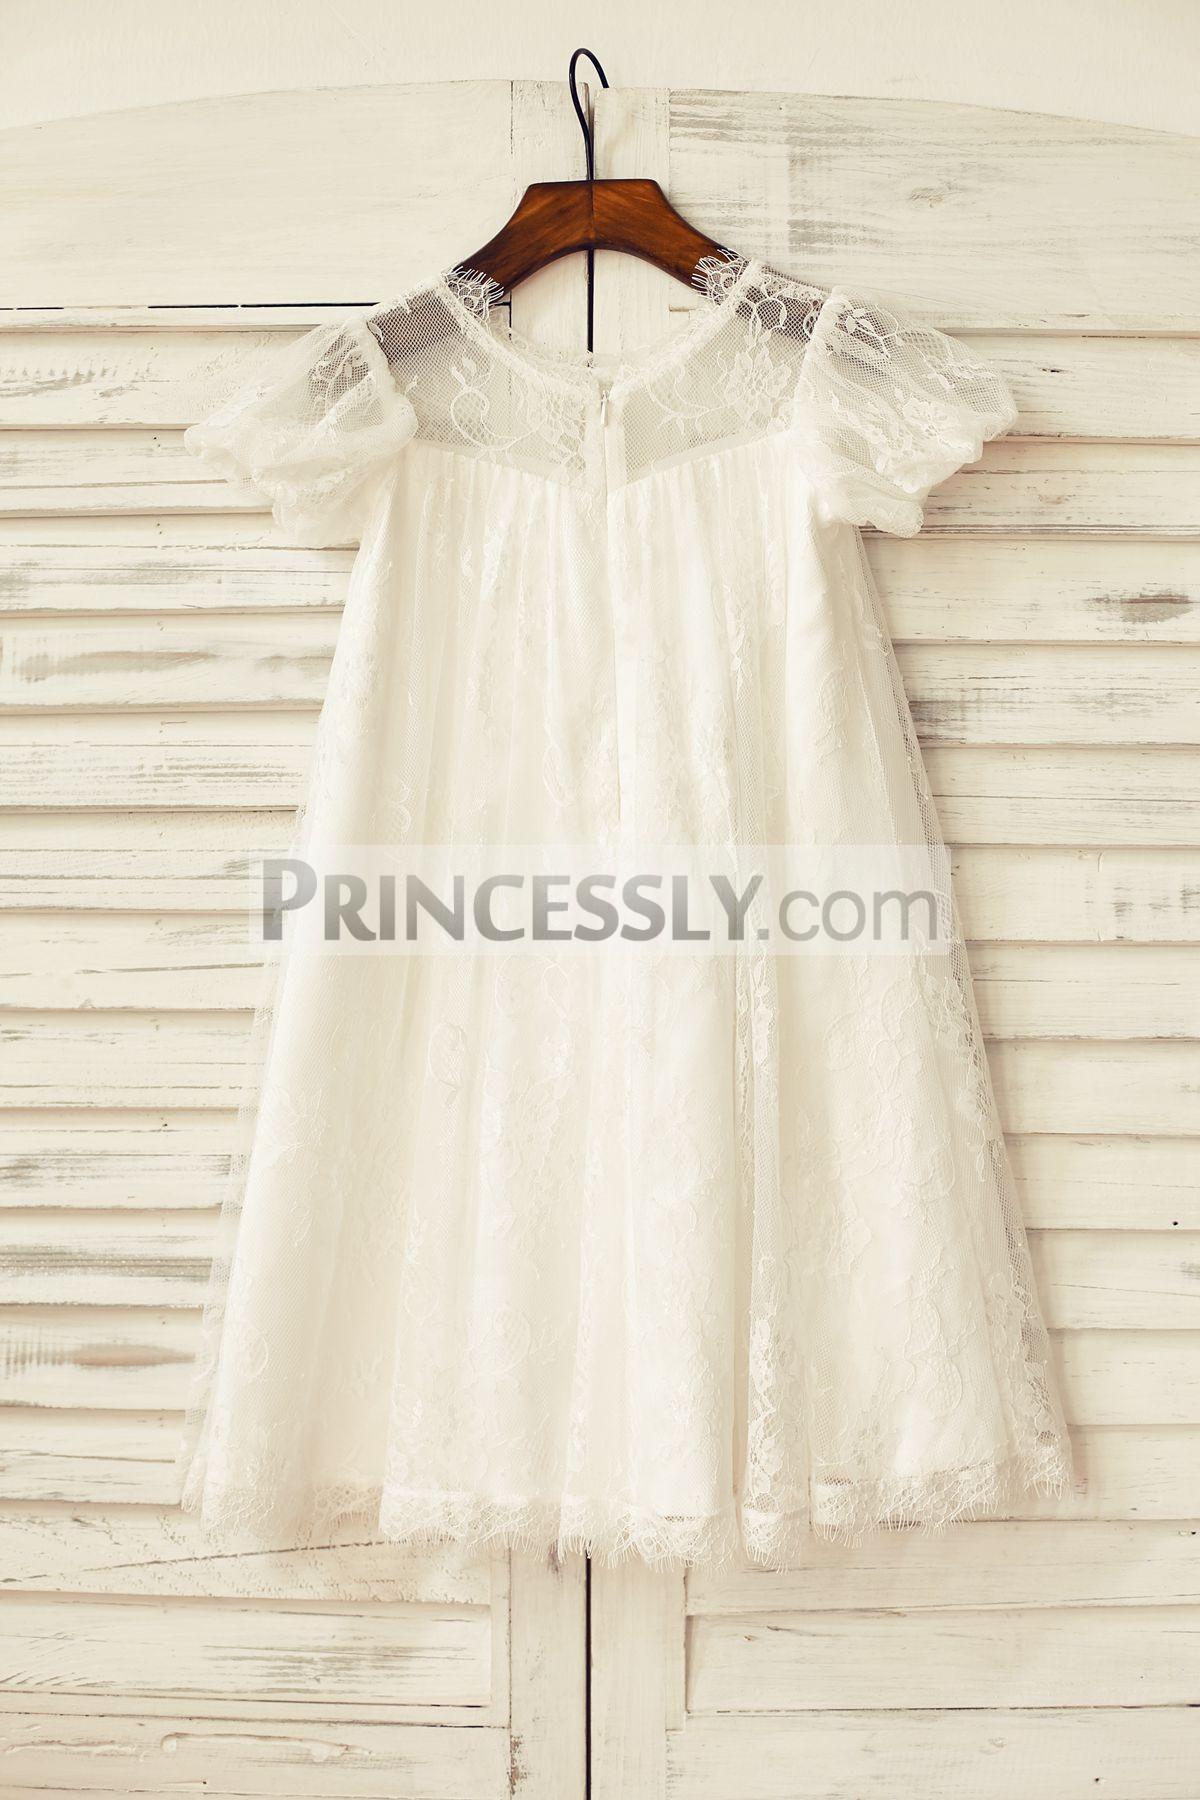 Sheer Short Puffy Sleeves Ivory Eyelash Lace Wedding